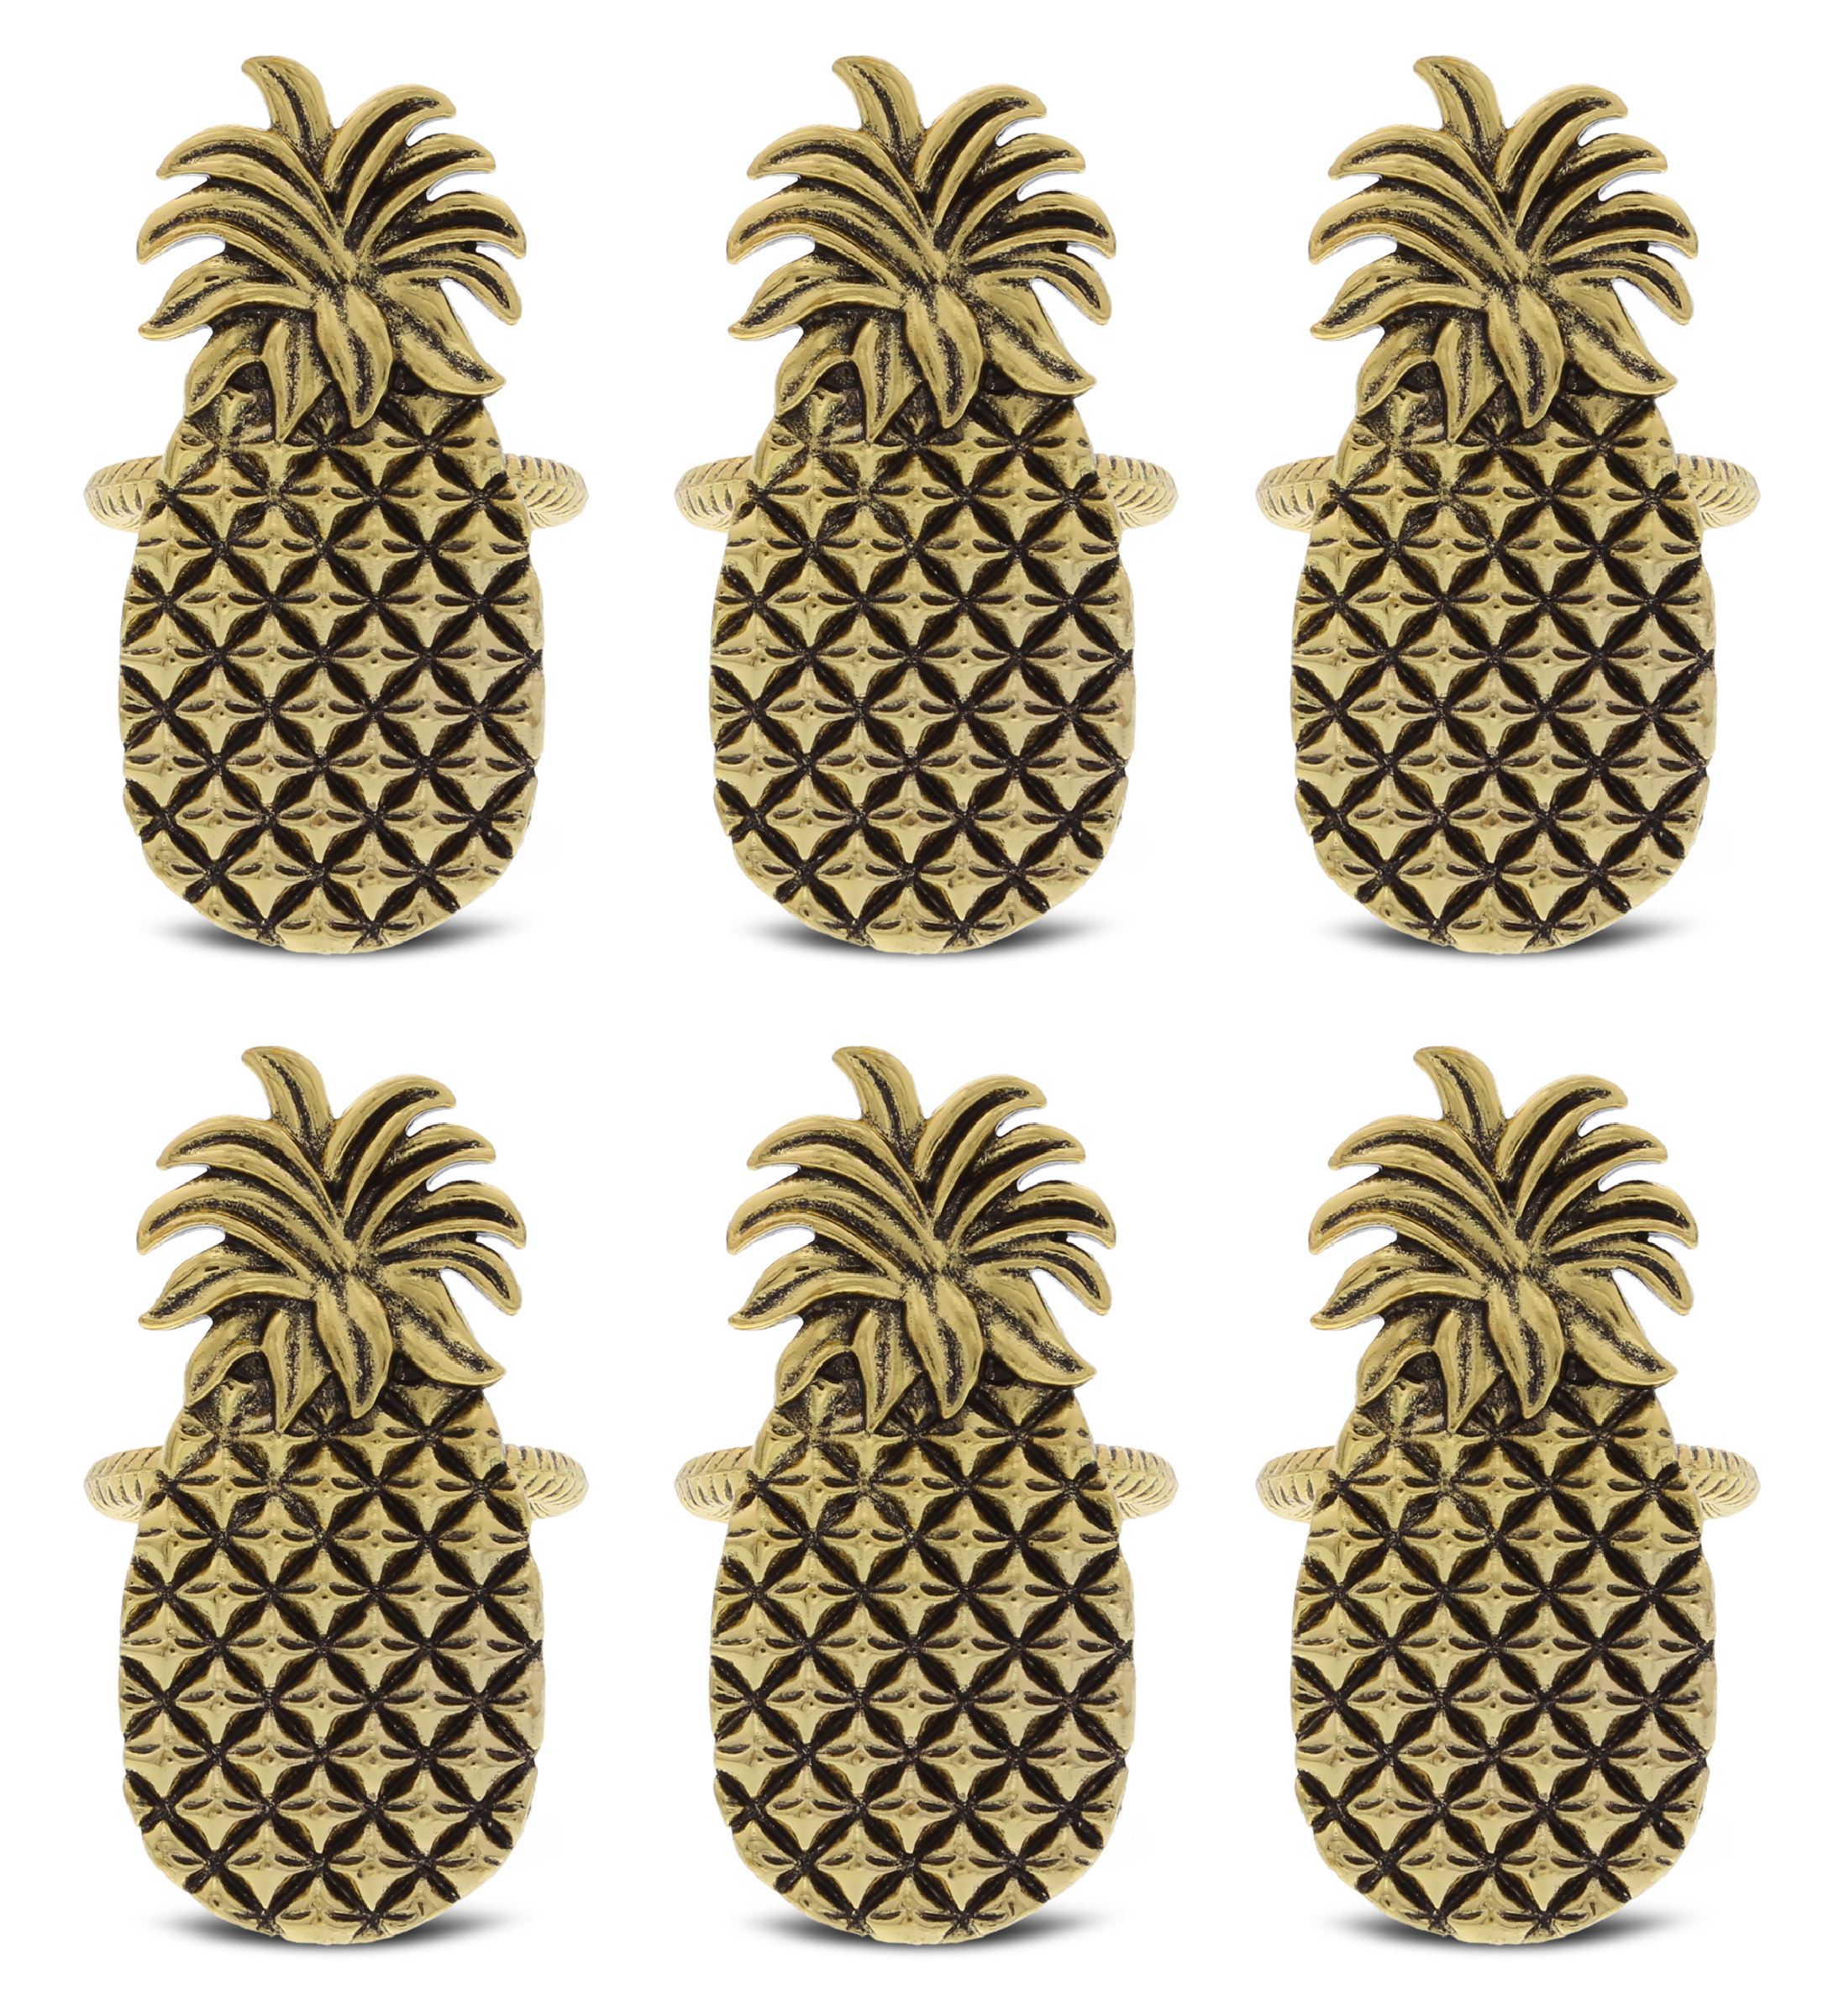 Kitchabon Gold Napkin Rings Set Of 6 Table Setting Centerpiece Decor Napkins Ring Holders Napkin Ring Packs For Family Holiday Dinner Fancy Banquet Wedding Decorations For Reception Pineapple Walmart Com